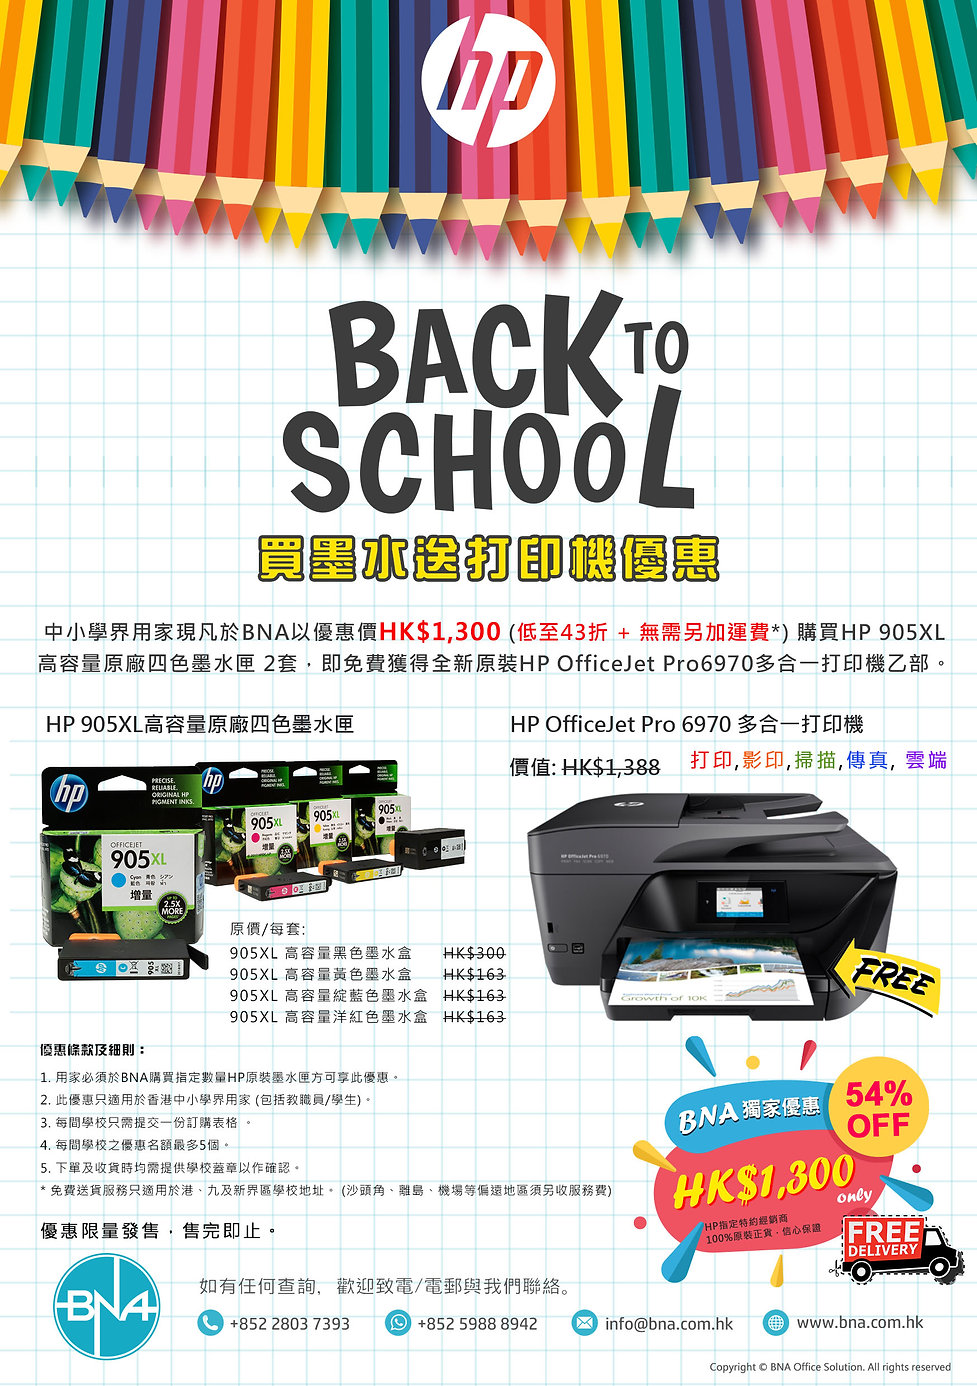 HP BACK TO SCHOOL 6970.jpg